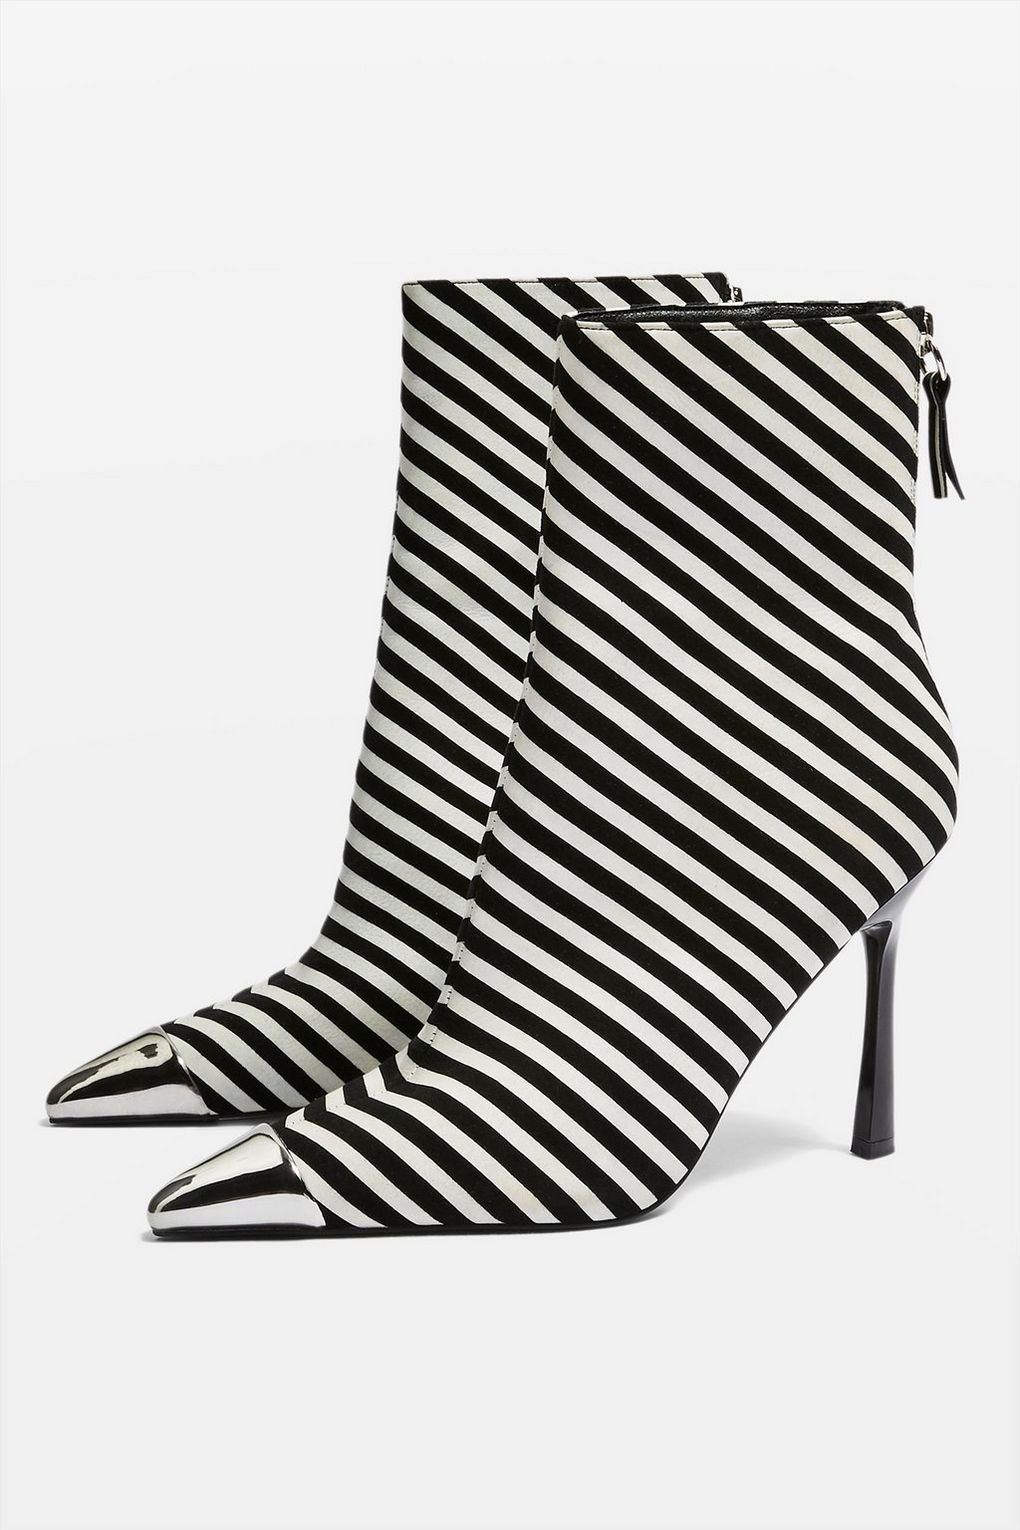 HYPNOTISE Ankle Boots - Topshop